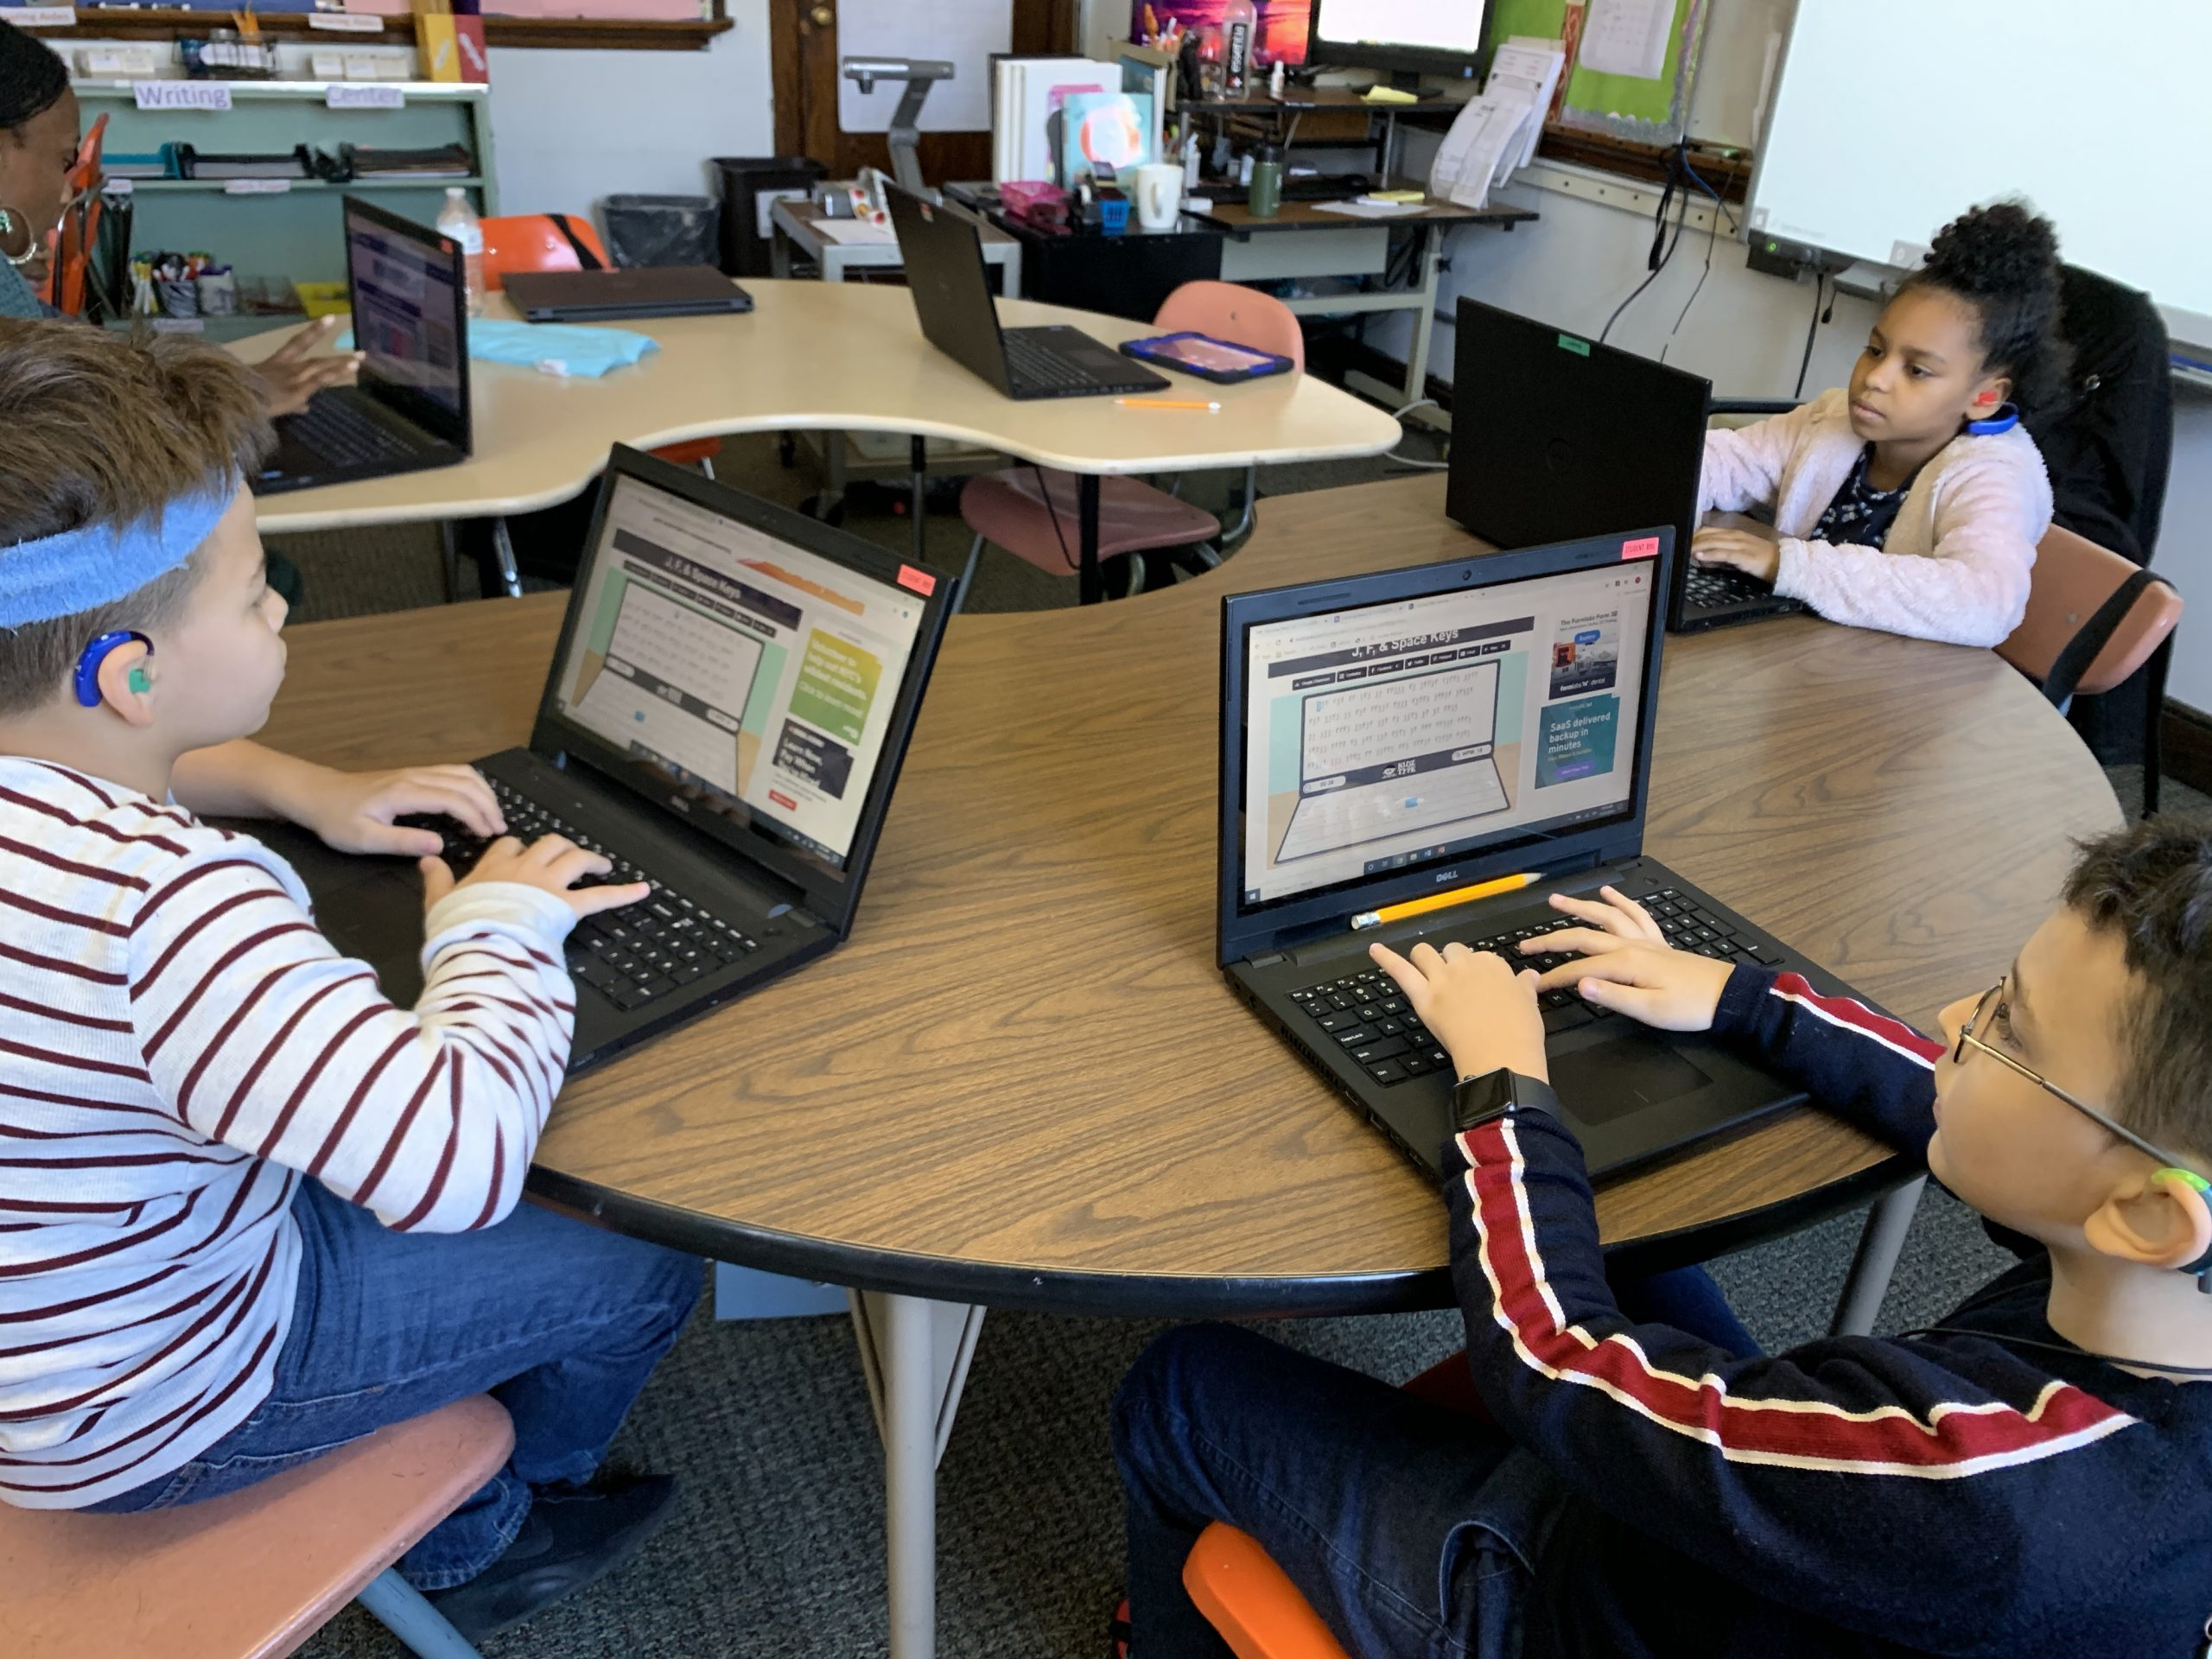 A female teacher and three 4th grade students are typing on their laptops in a classroom. They are focused on their own work as they sit at kidney bean shaped tables working independently.